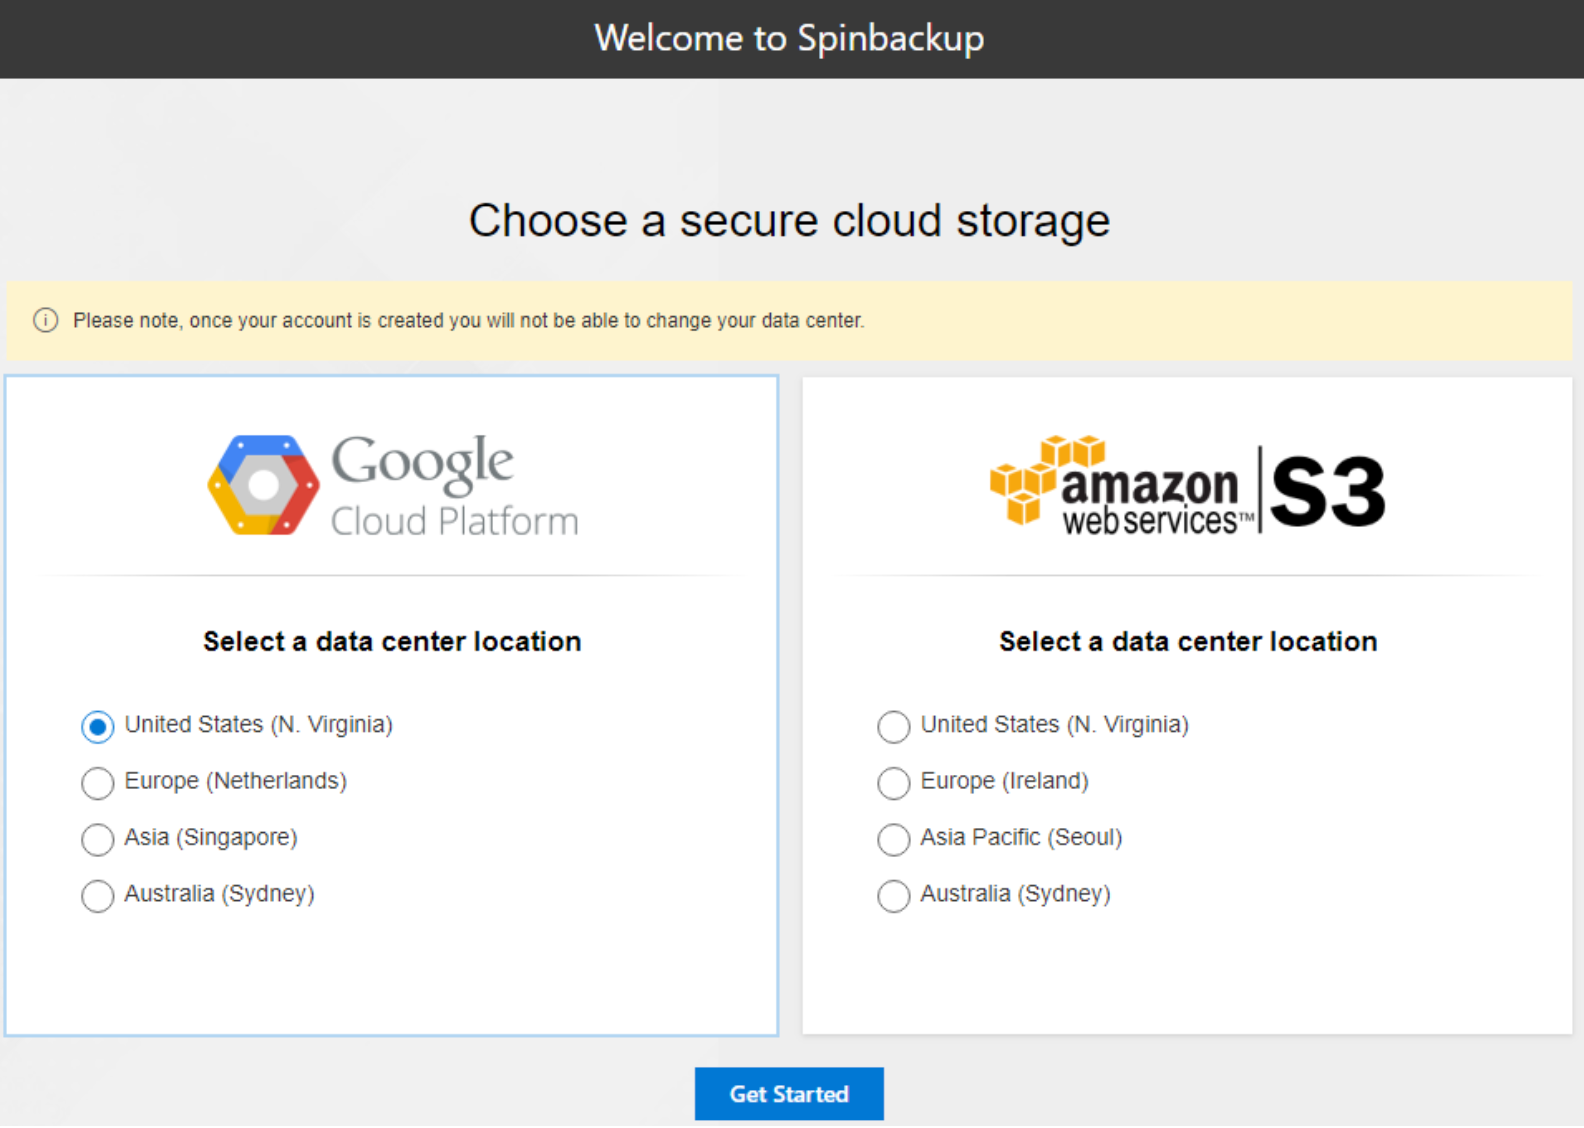 Configuring Spinbackup storage during the initial configuration